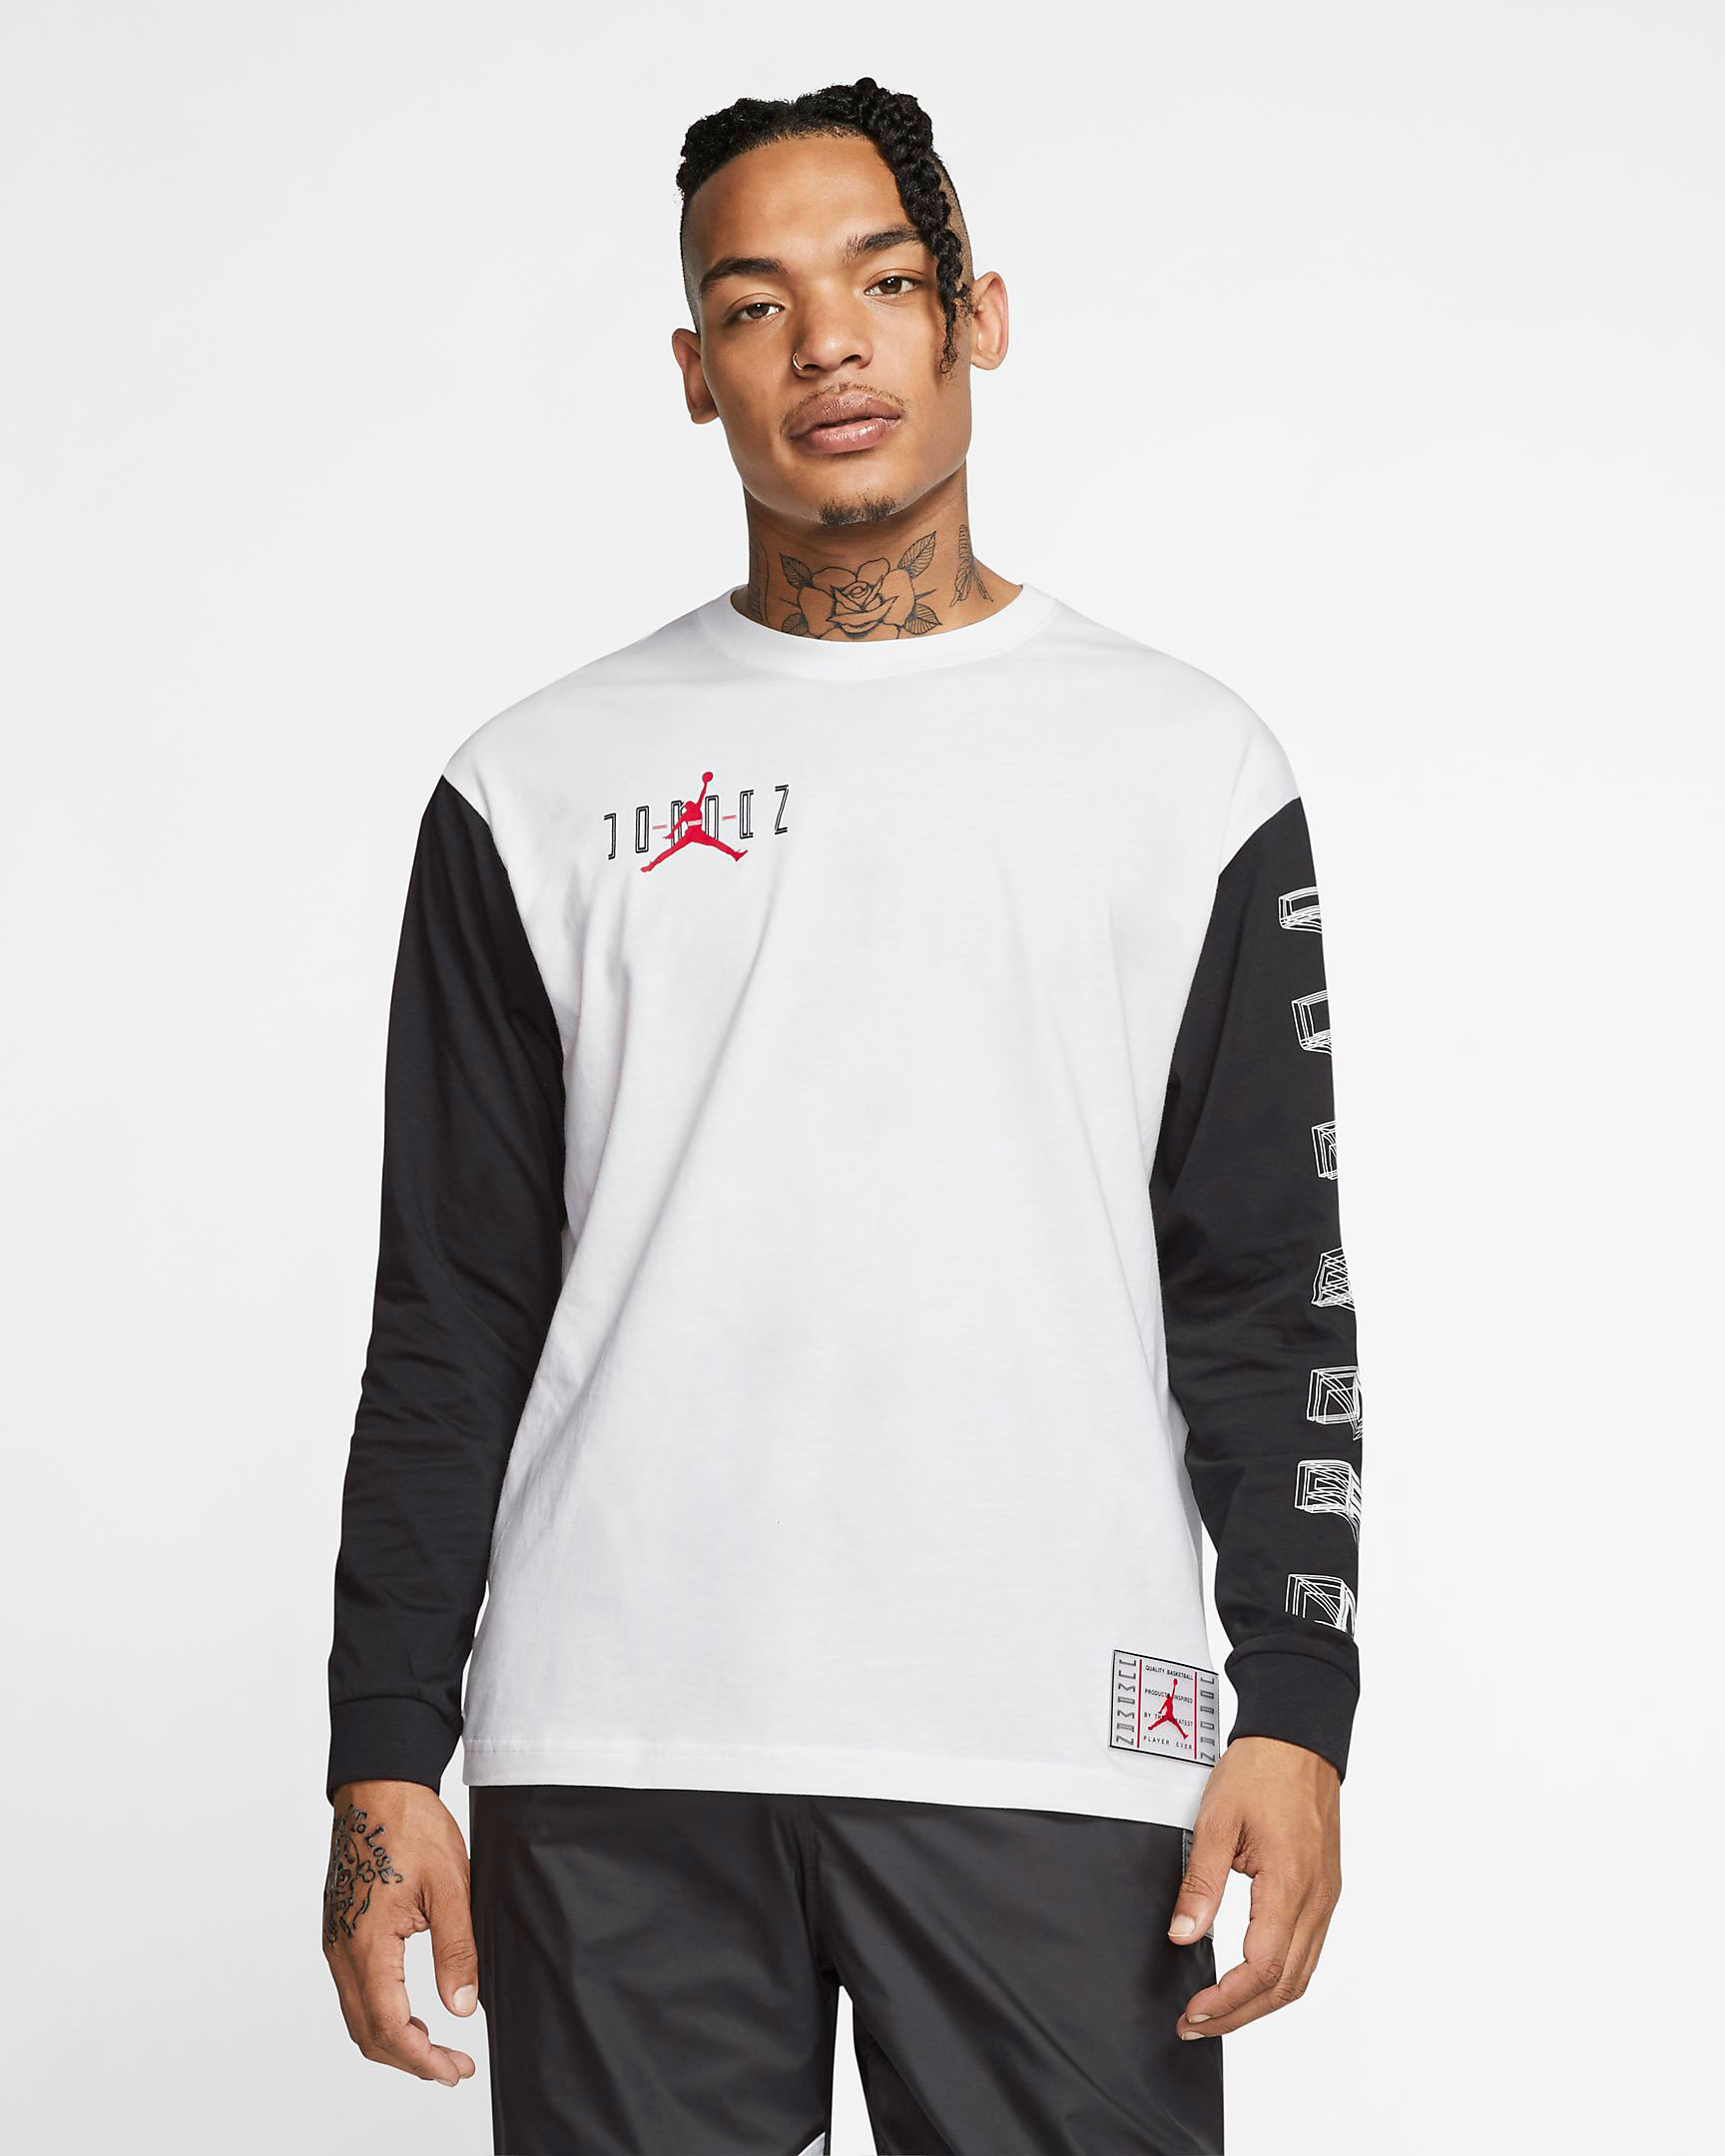 air-jordan-11-bred-2019-long-sleeve-shirt-1